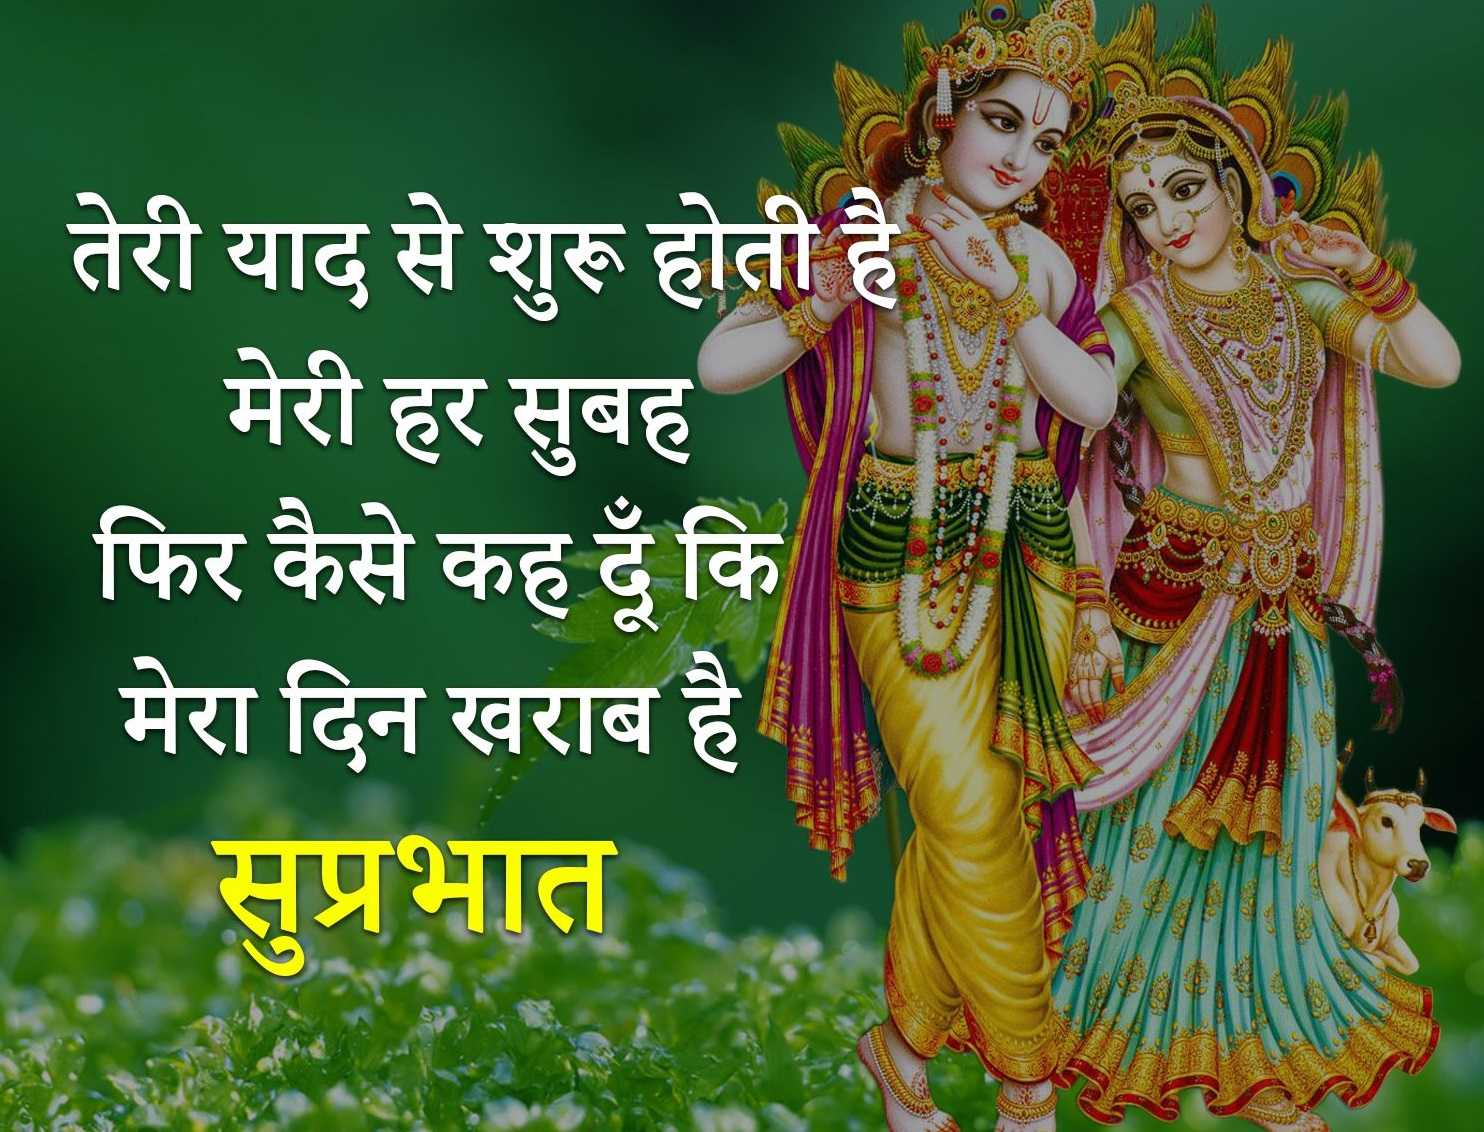 Good Morning God Images With Quotes In Hindi - Good Morning God Images With Quotes In Hindi